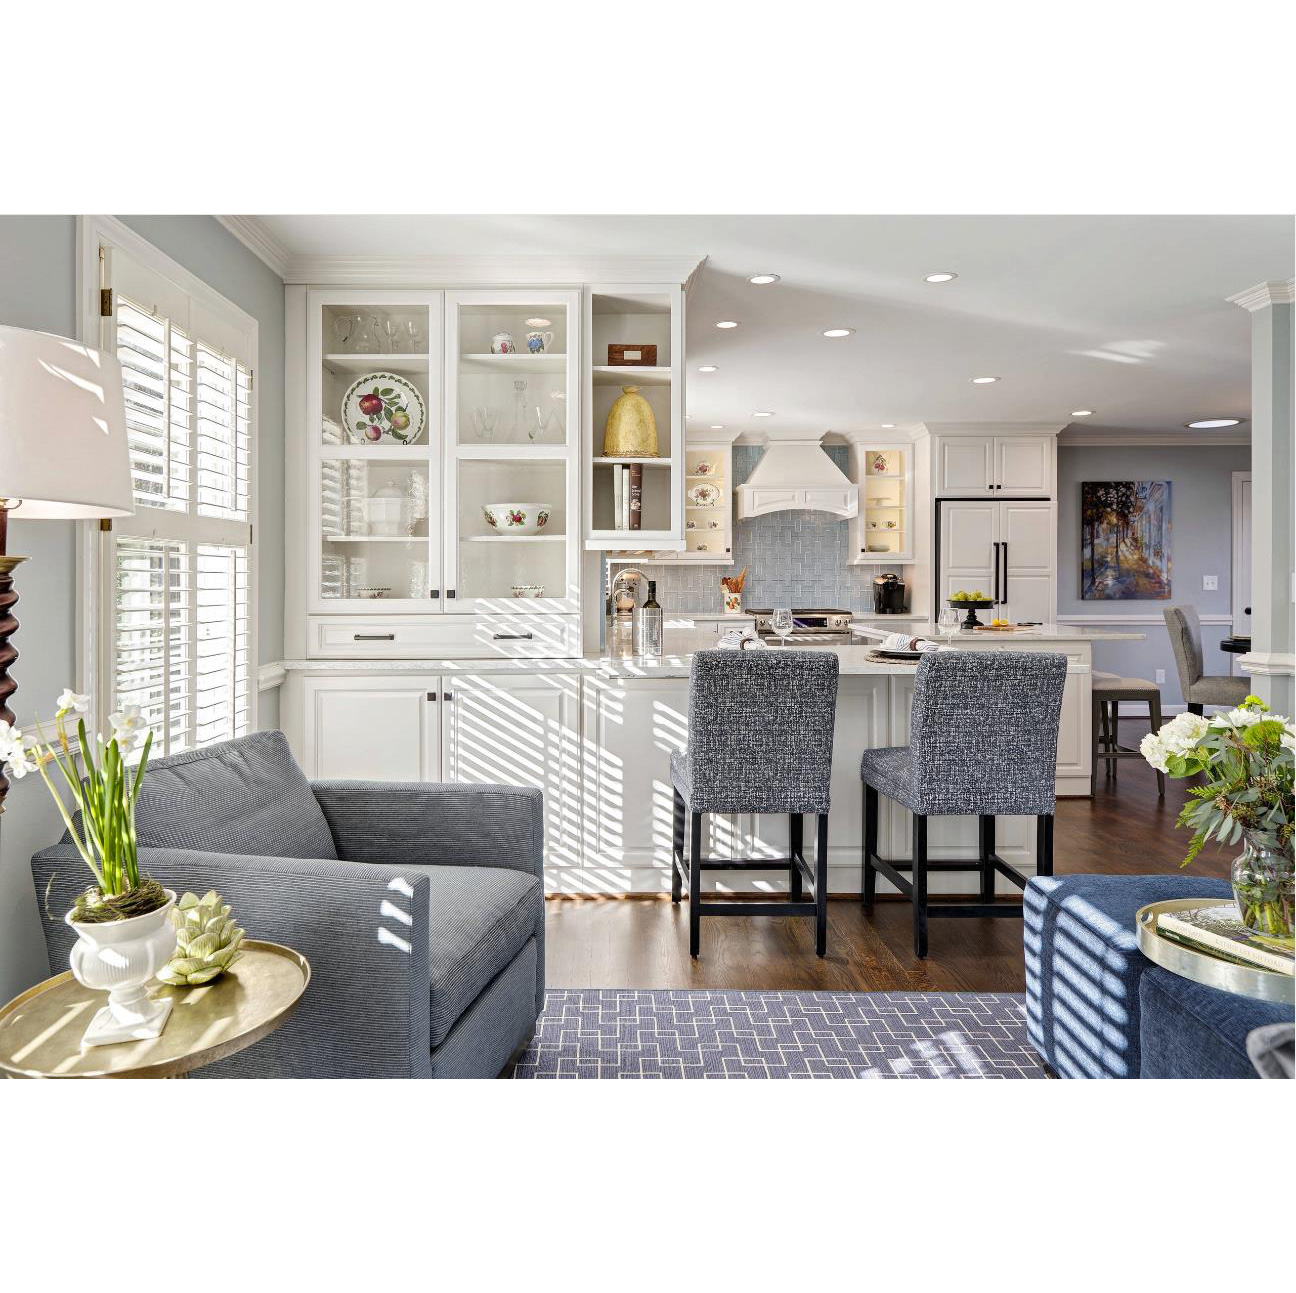 AisDecor top-selling gray cabinets kitchen wholesale-2